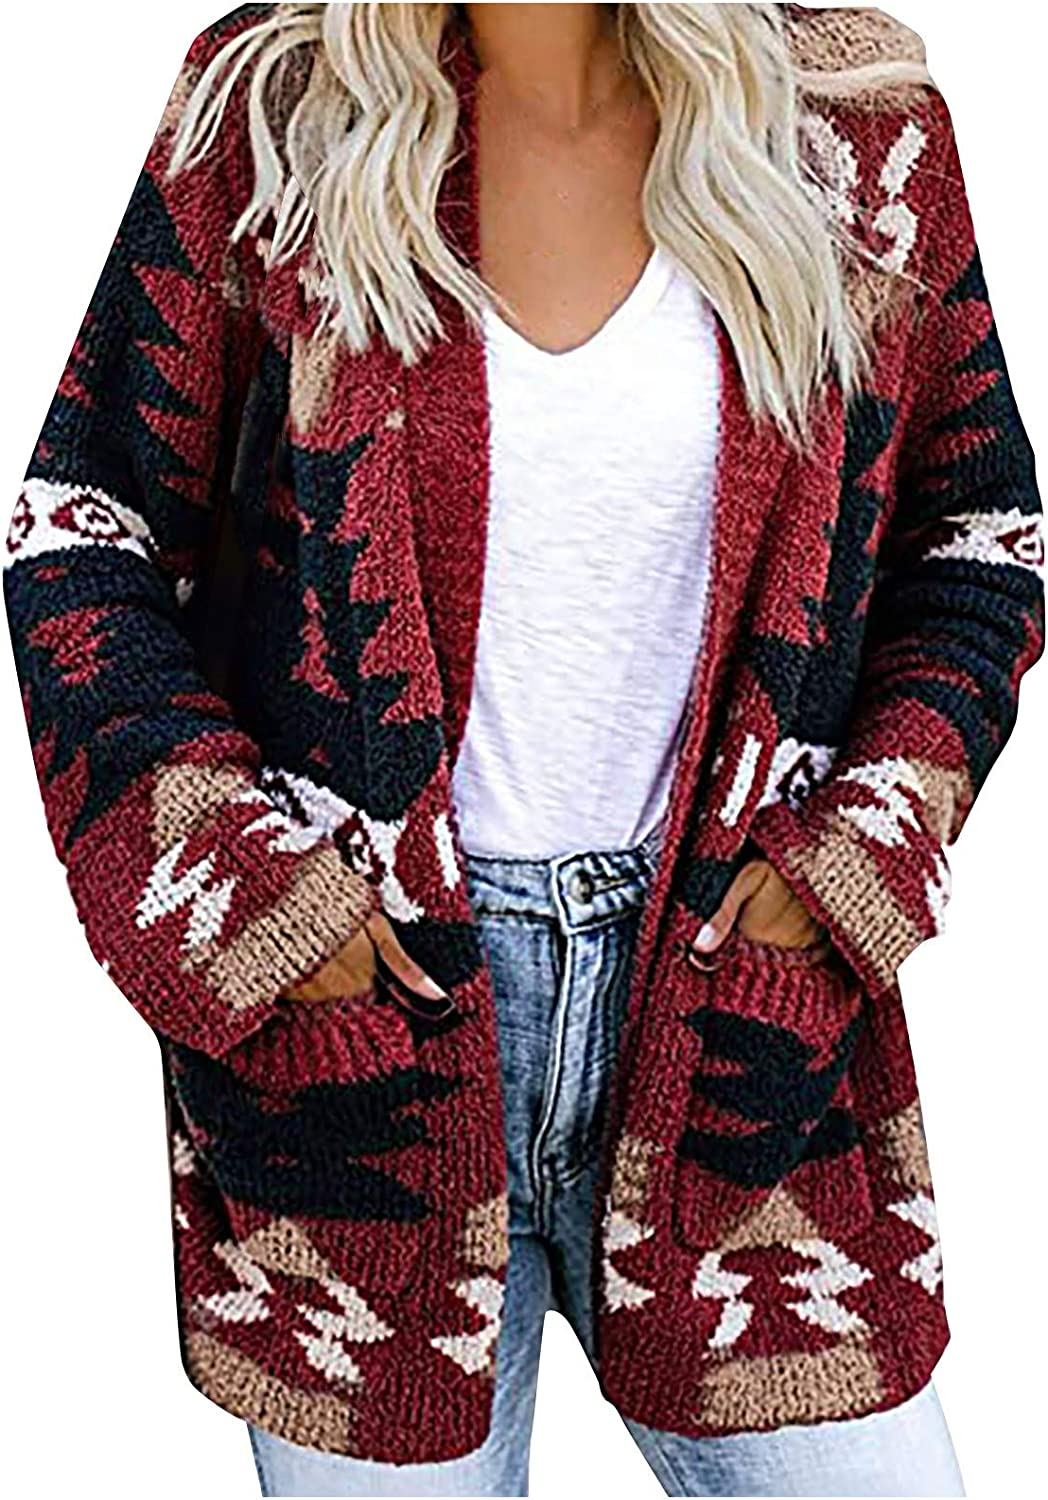 Women Fashion Metro Print Knitted with Pockets Long Sleeves Loose Open Front Cardigan Sweater Coats Outerwear